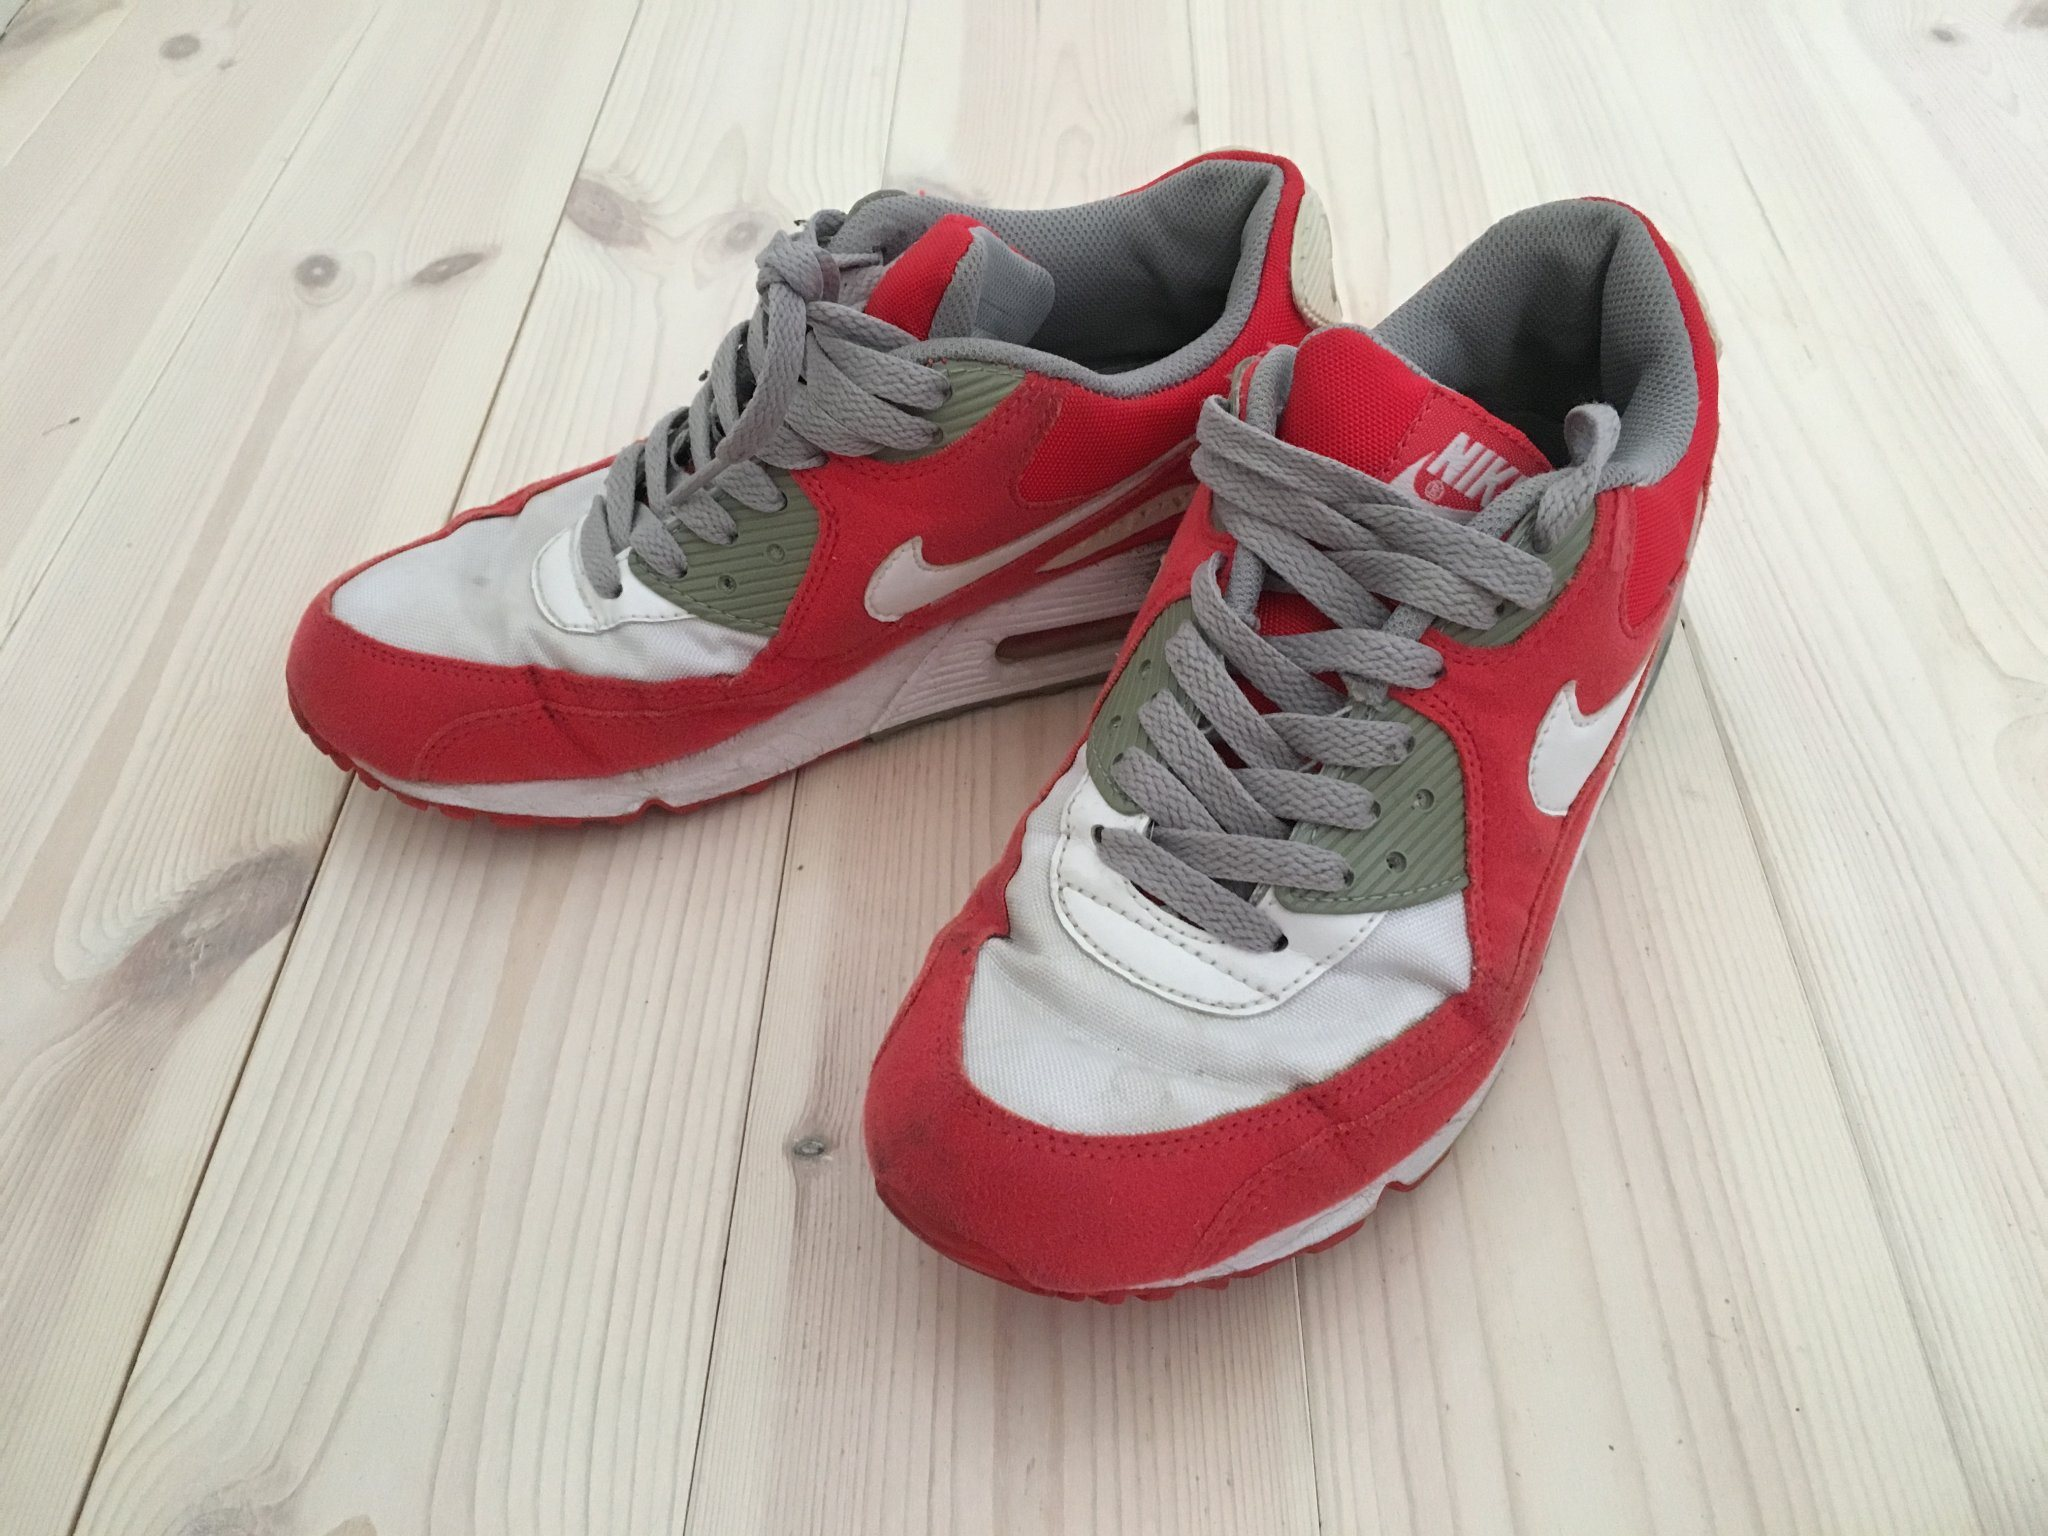 new style 97c92 6d0af ... size 40 91094 ee4d2 Nike Air Max, storlek 40